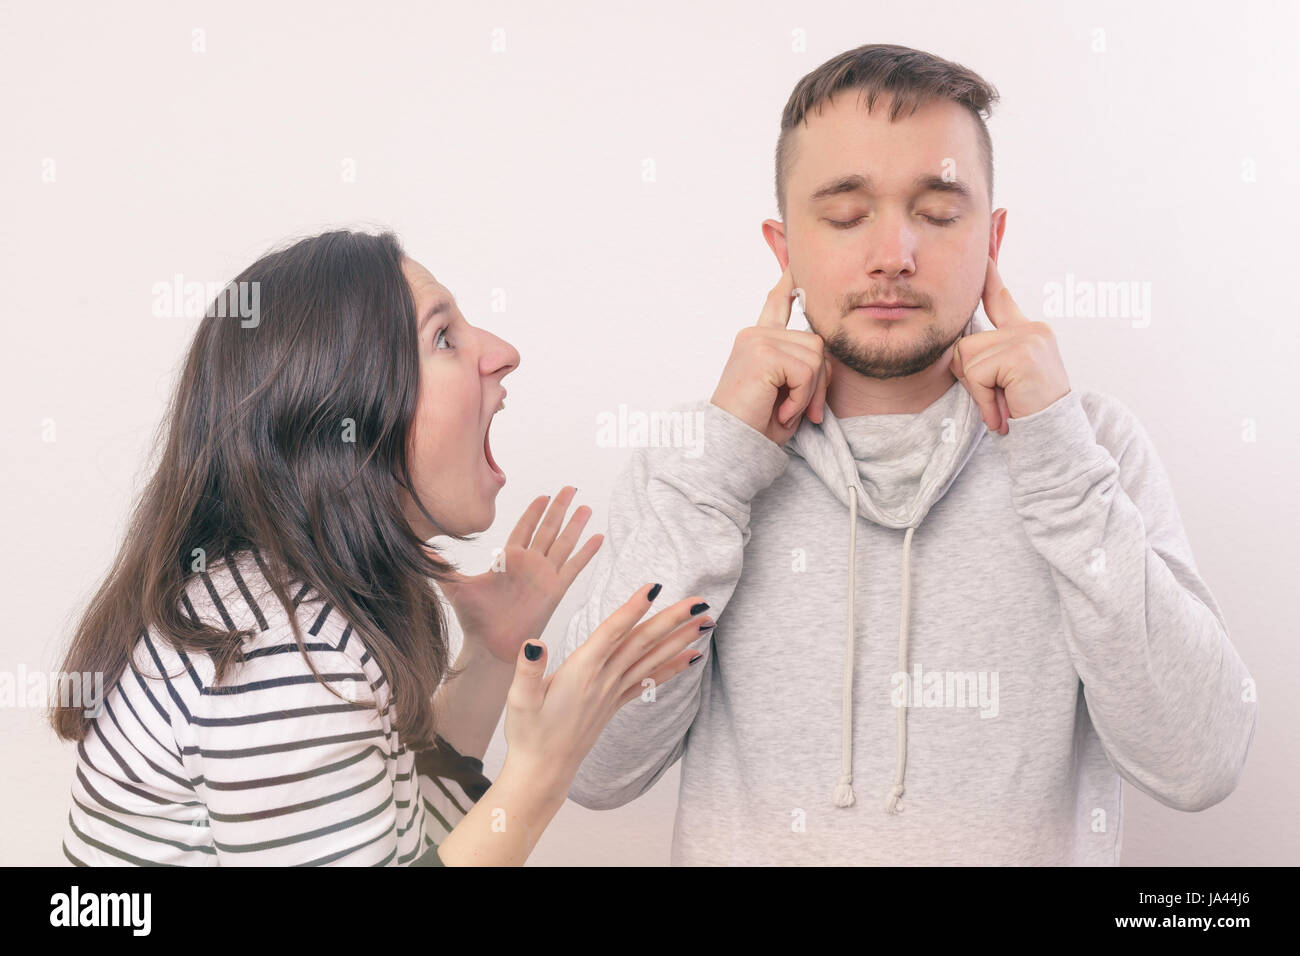 Woman yelling at her boyfriend in hysterics. Young man covers his ears, not wanting to listen to it - Stock Image